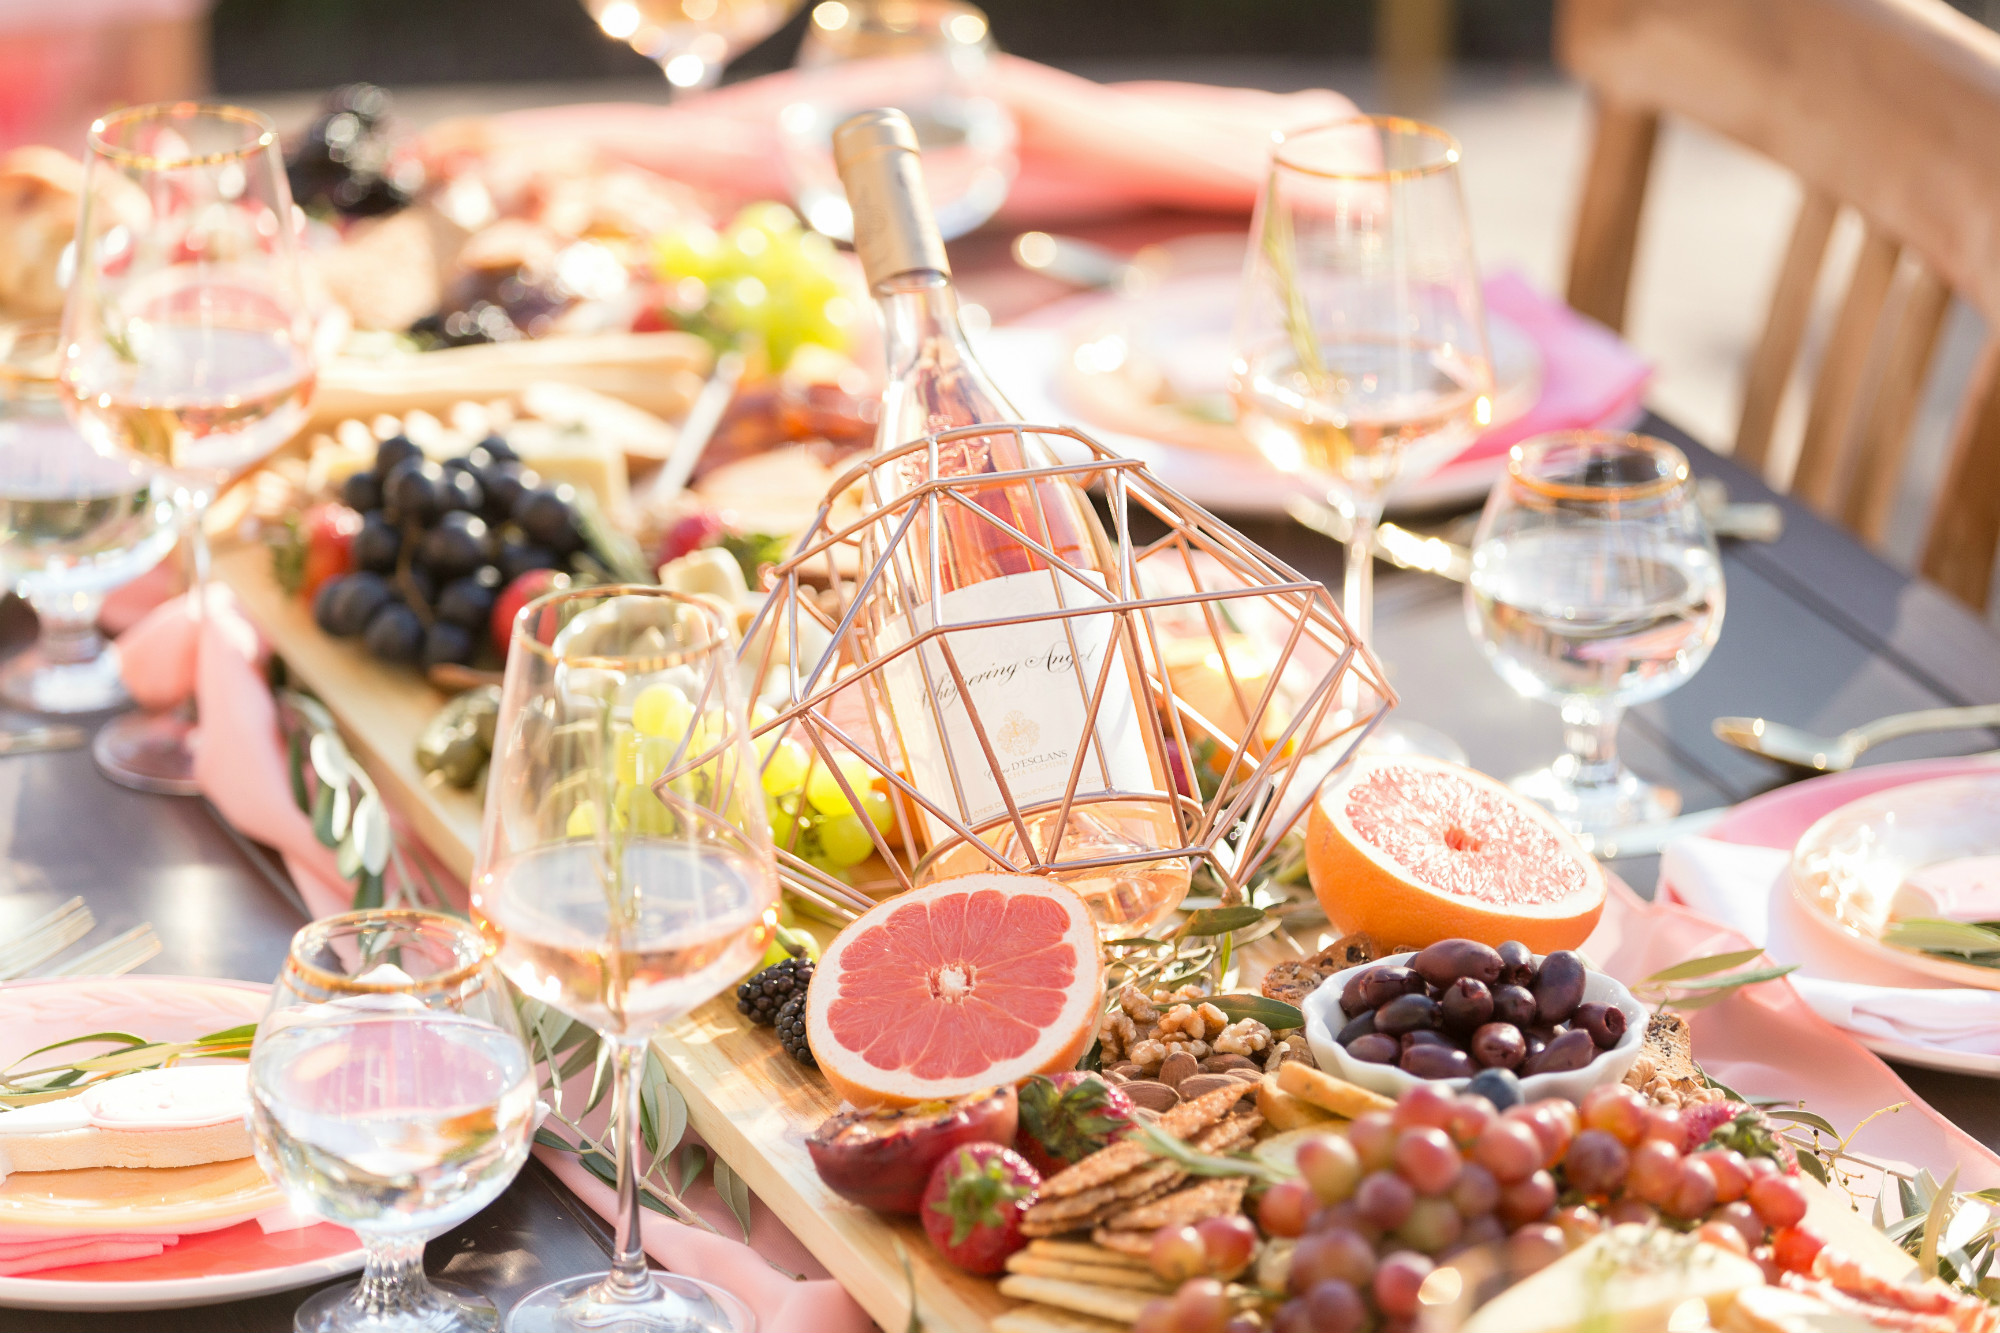 Whispering Angel and Charcuterie Board from One Stylish Party Rose All Day Dinner Party | Black Twine